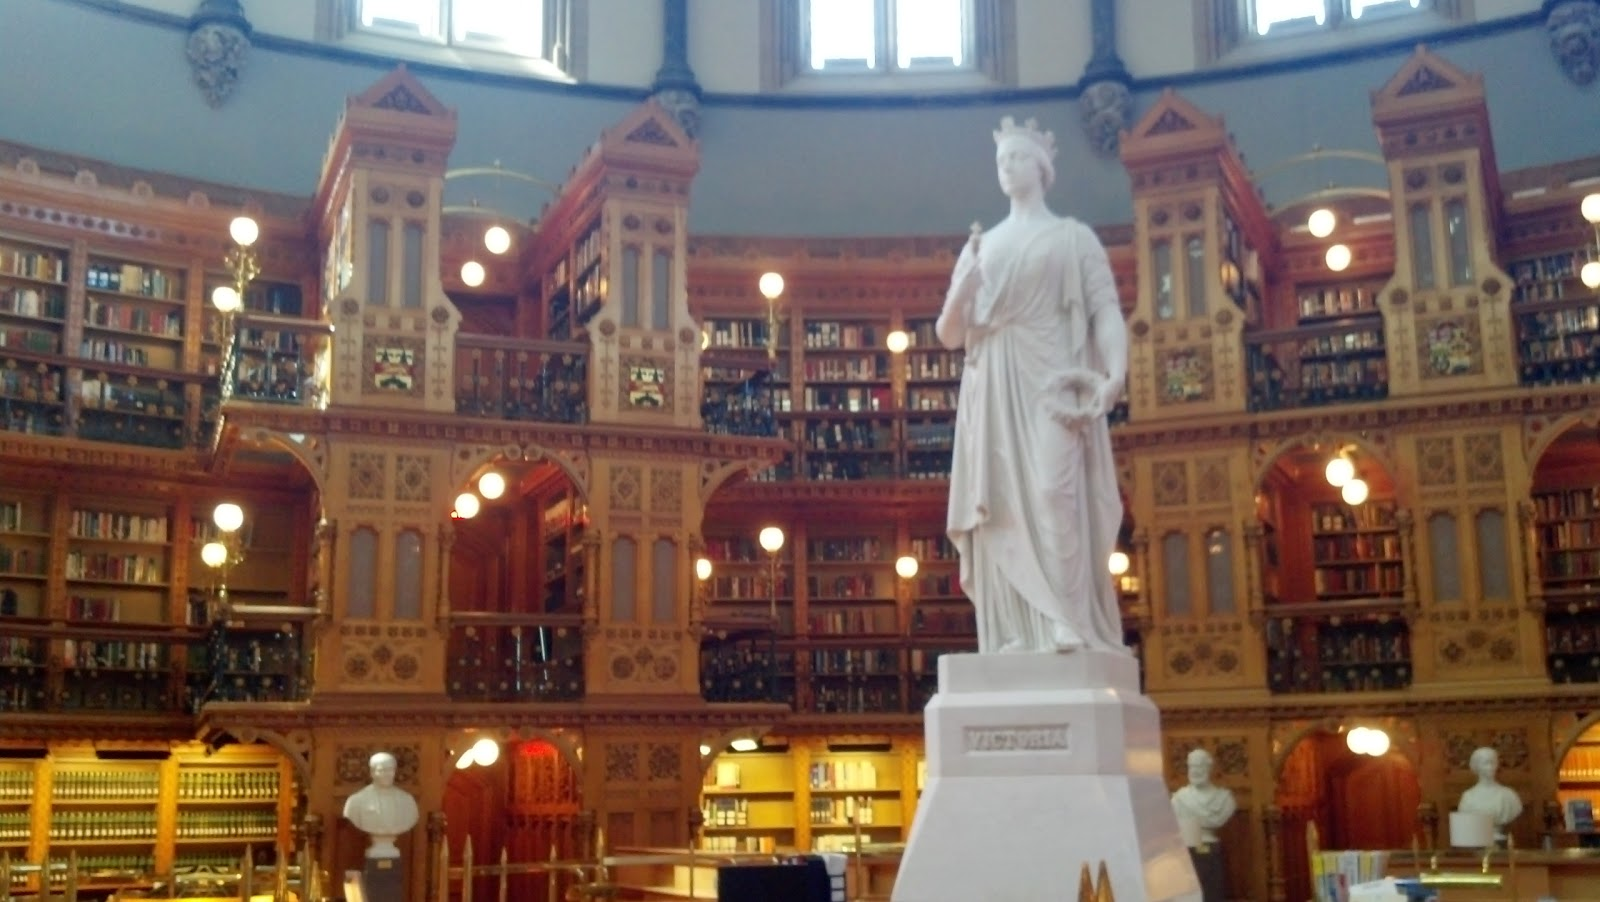 Statue of Queen Victoria in the Ottawa Library of Parliament